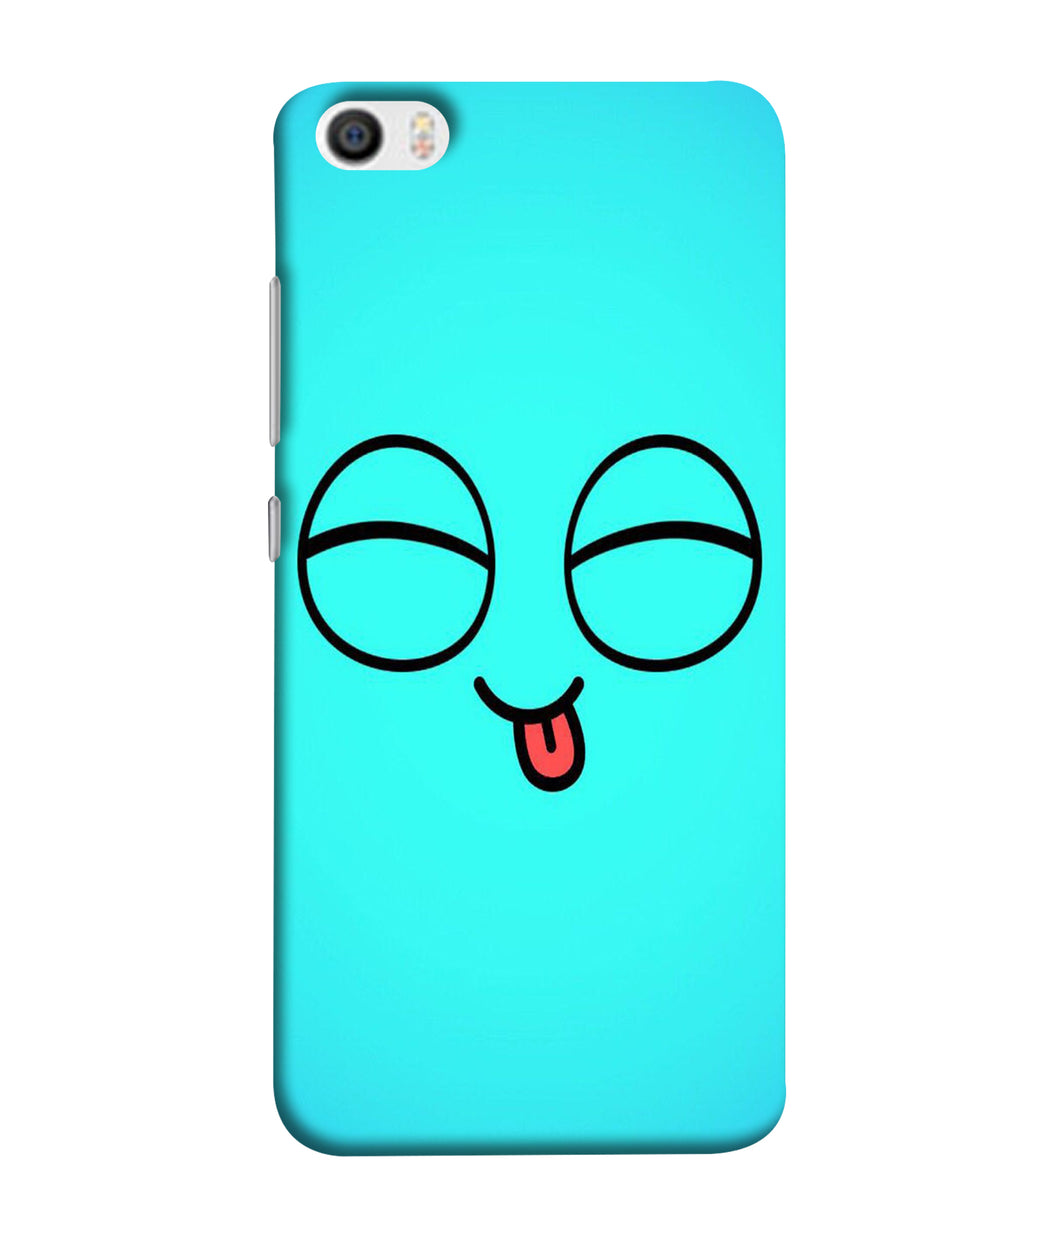 Xiaomi MI 5  Cute mobile cover